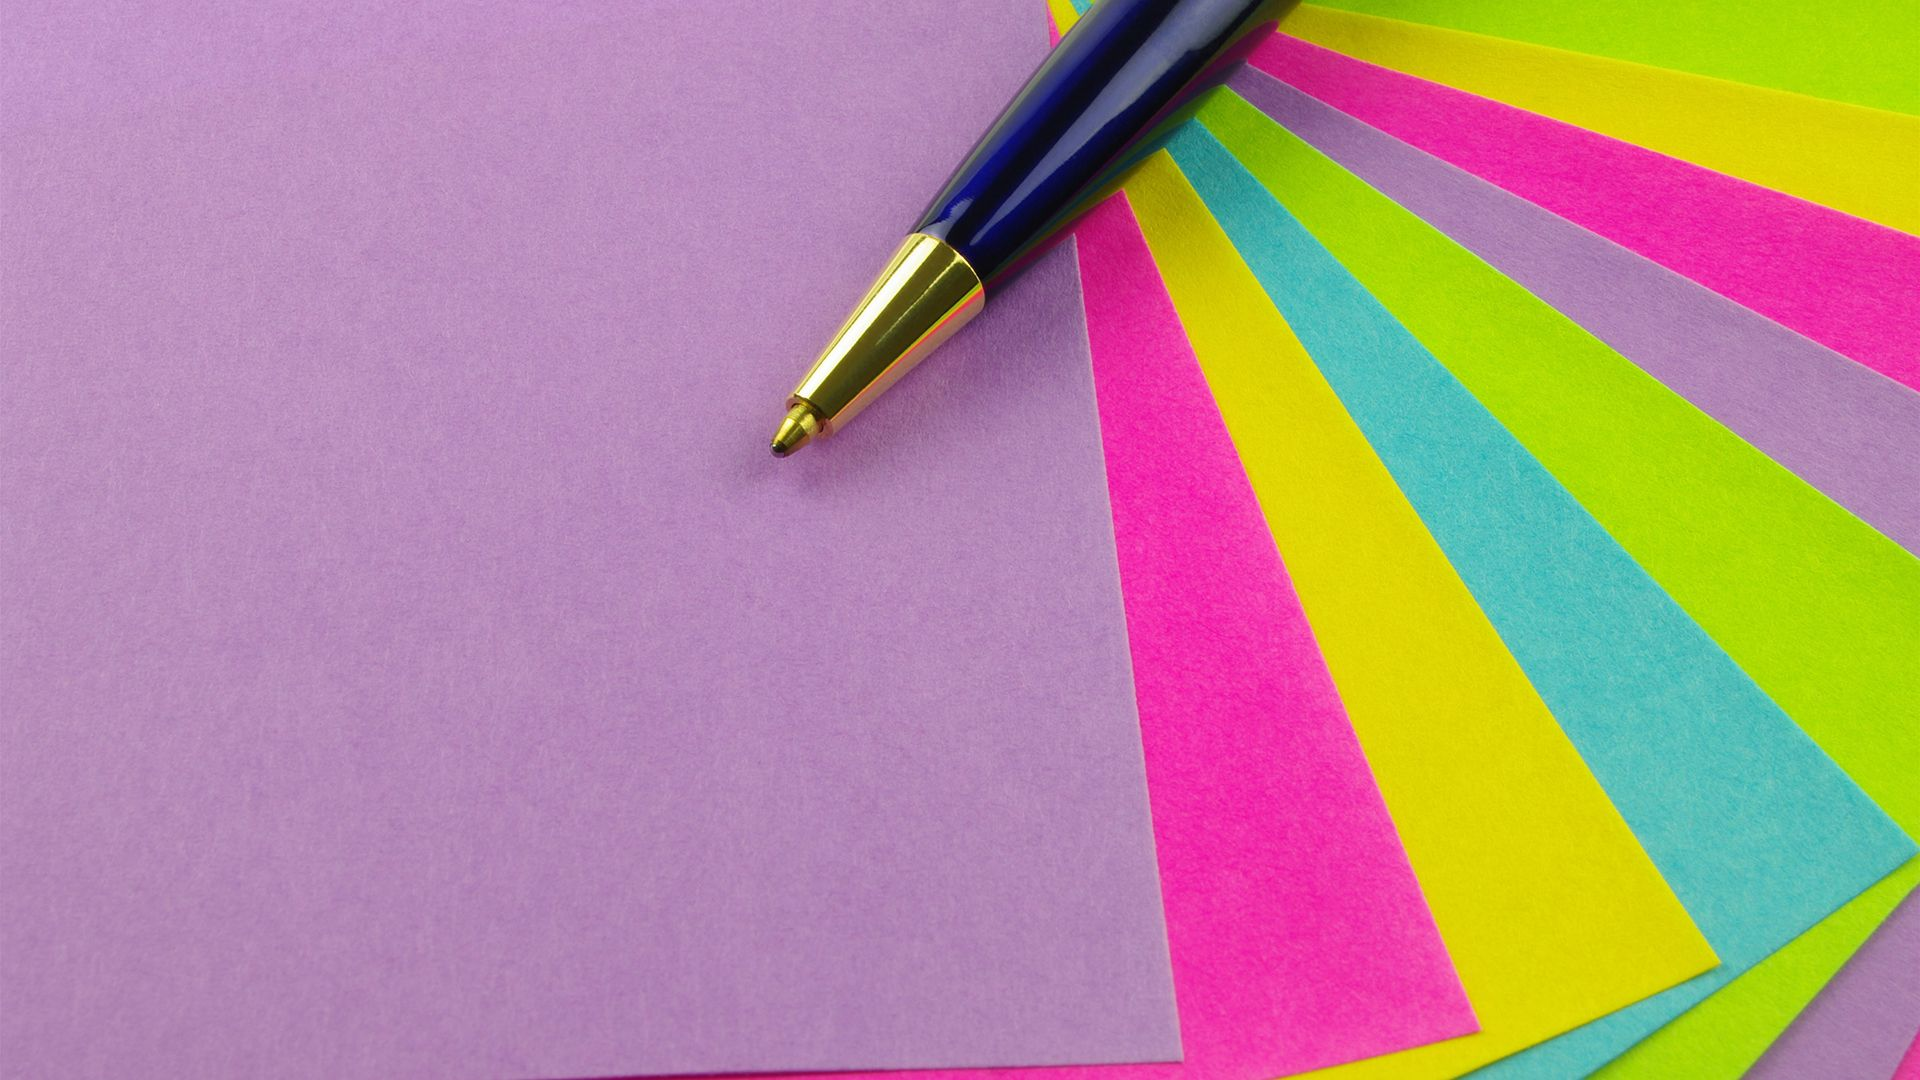 How are Post-its the key to getting what you want? The surprising answer